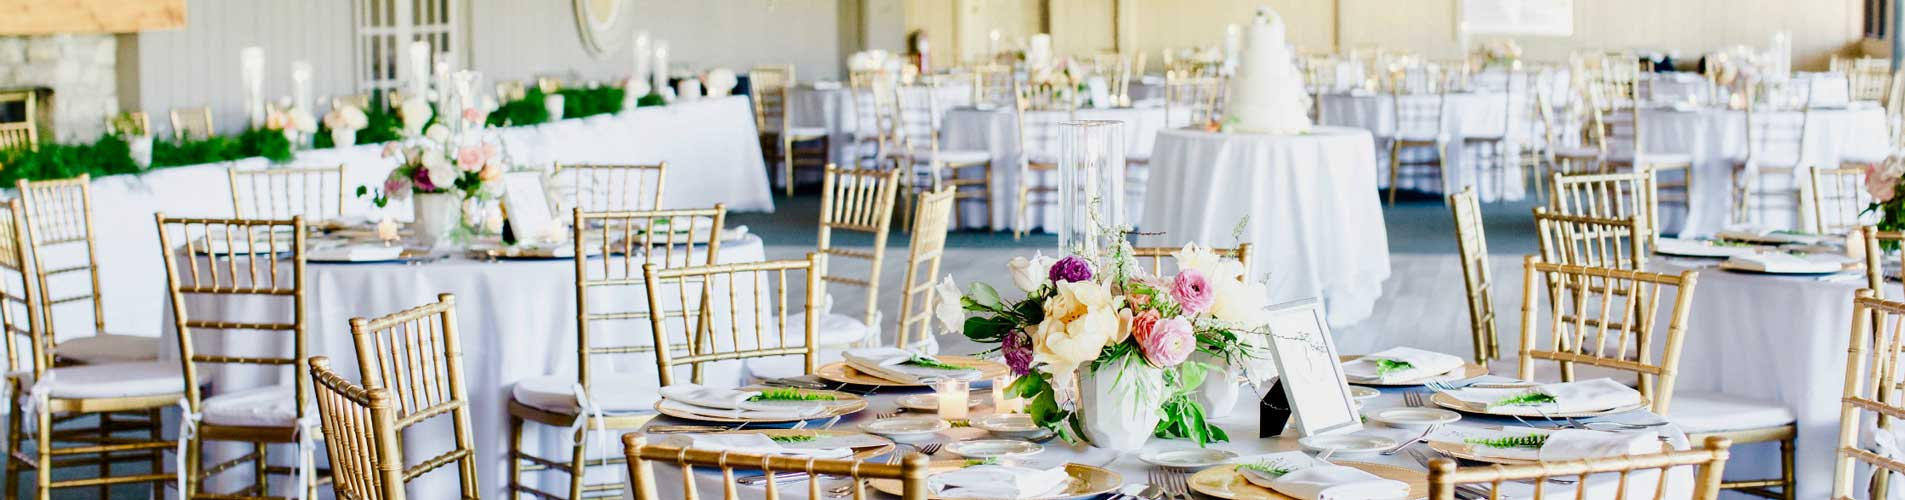 Elegant natural wedding reception at The Lodge at The Willows